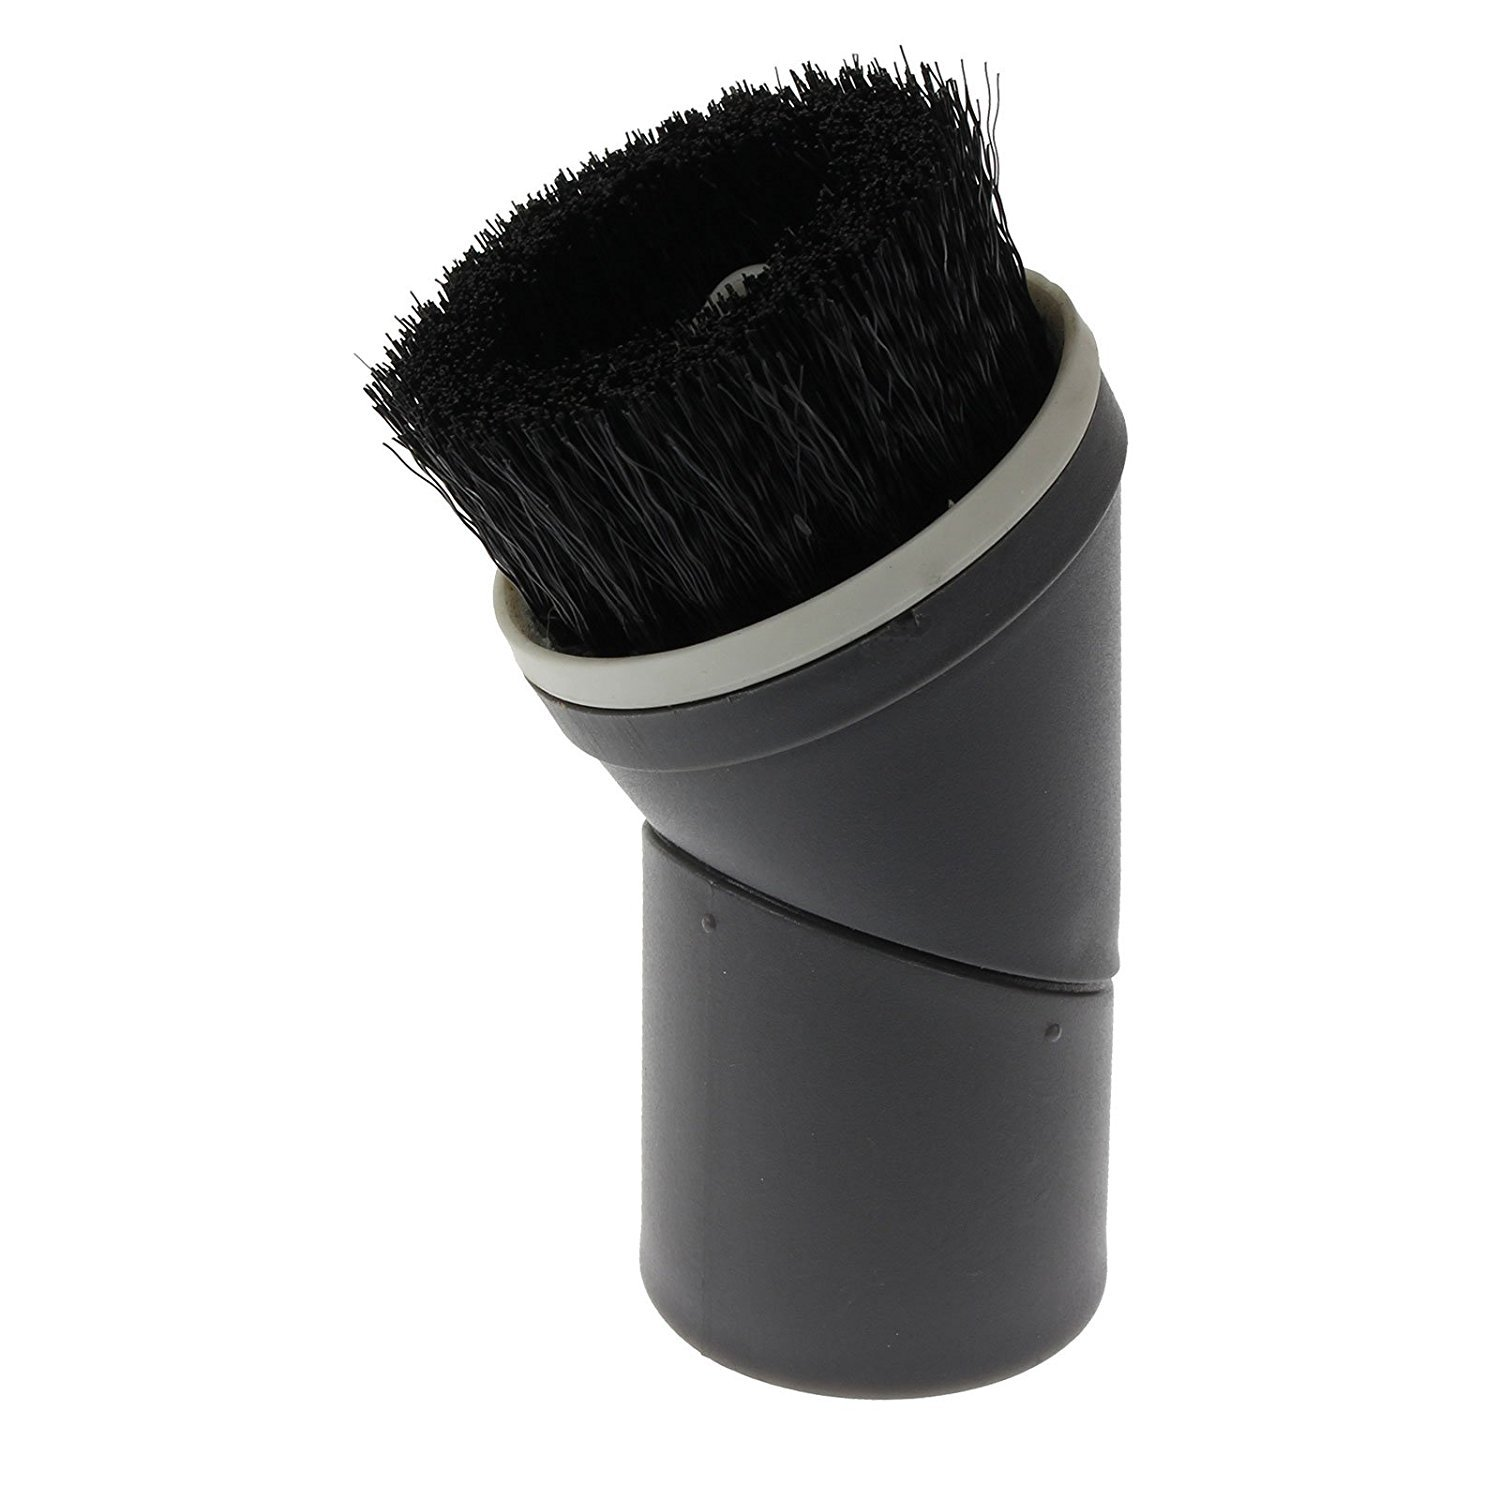 35 mm Dusting Brush W//Swivel for Miele Bosch Canister